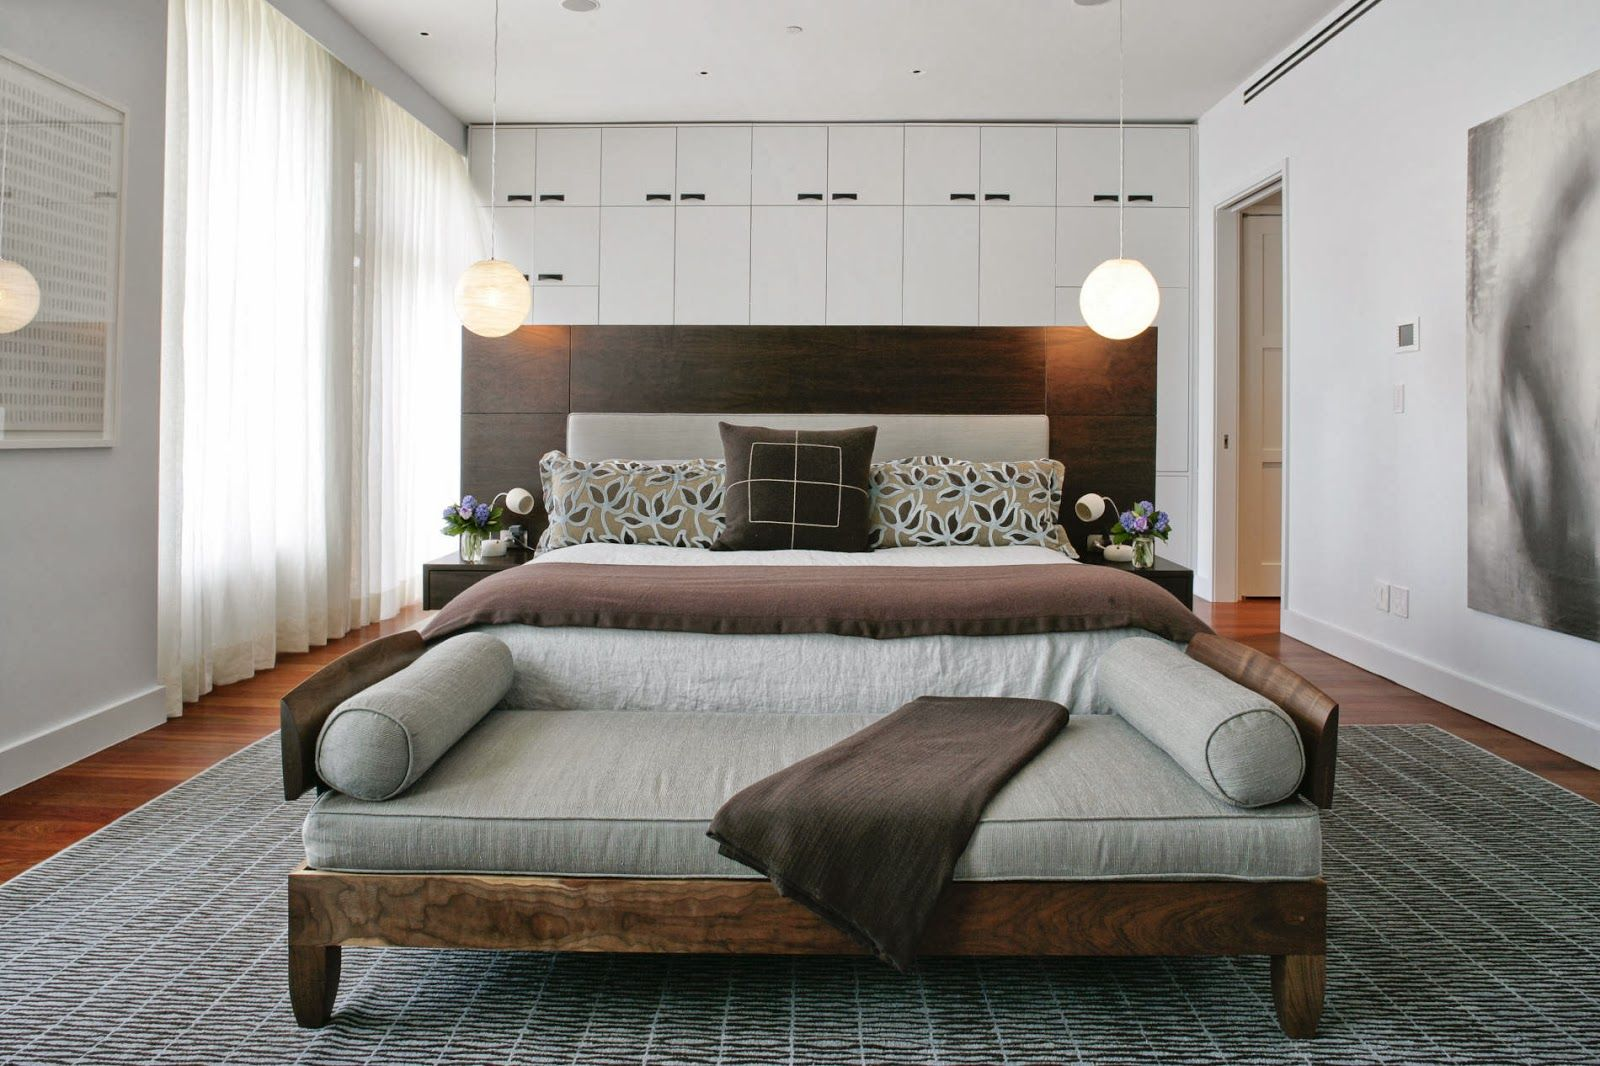 3 LOVELY FOOT OF THE BED IDEAS  - Godfather Style  Luxury